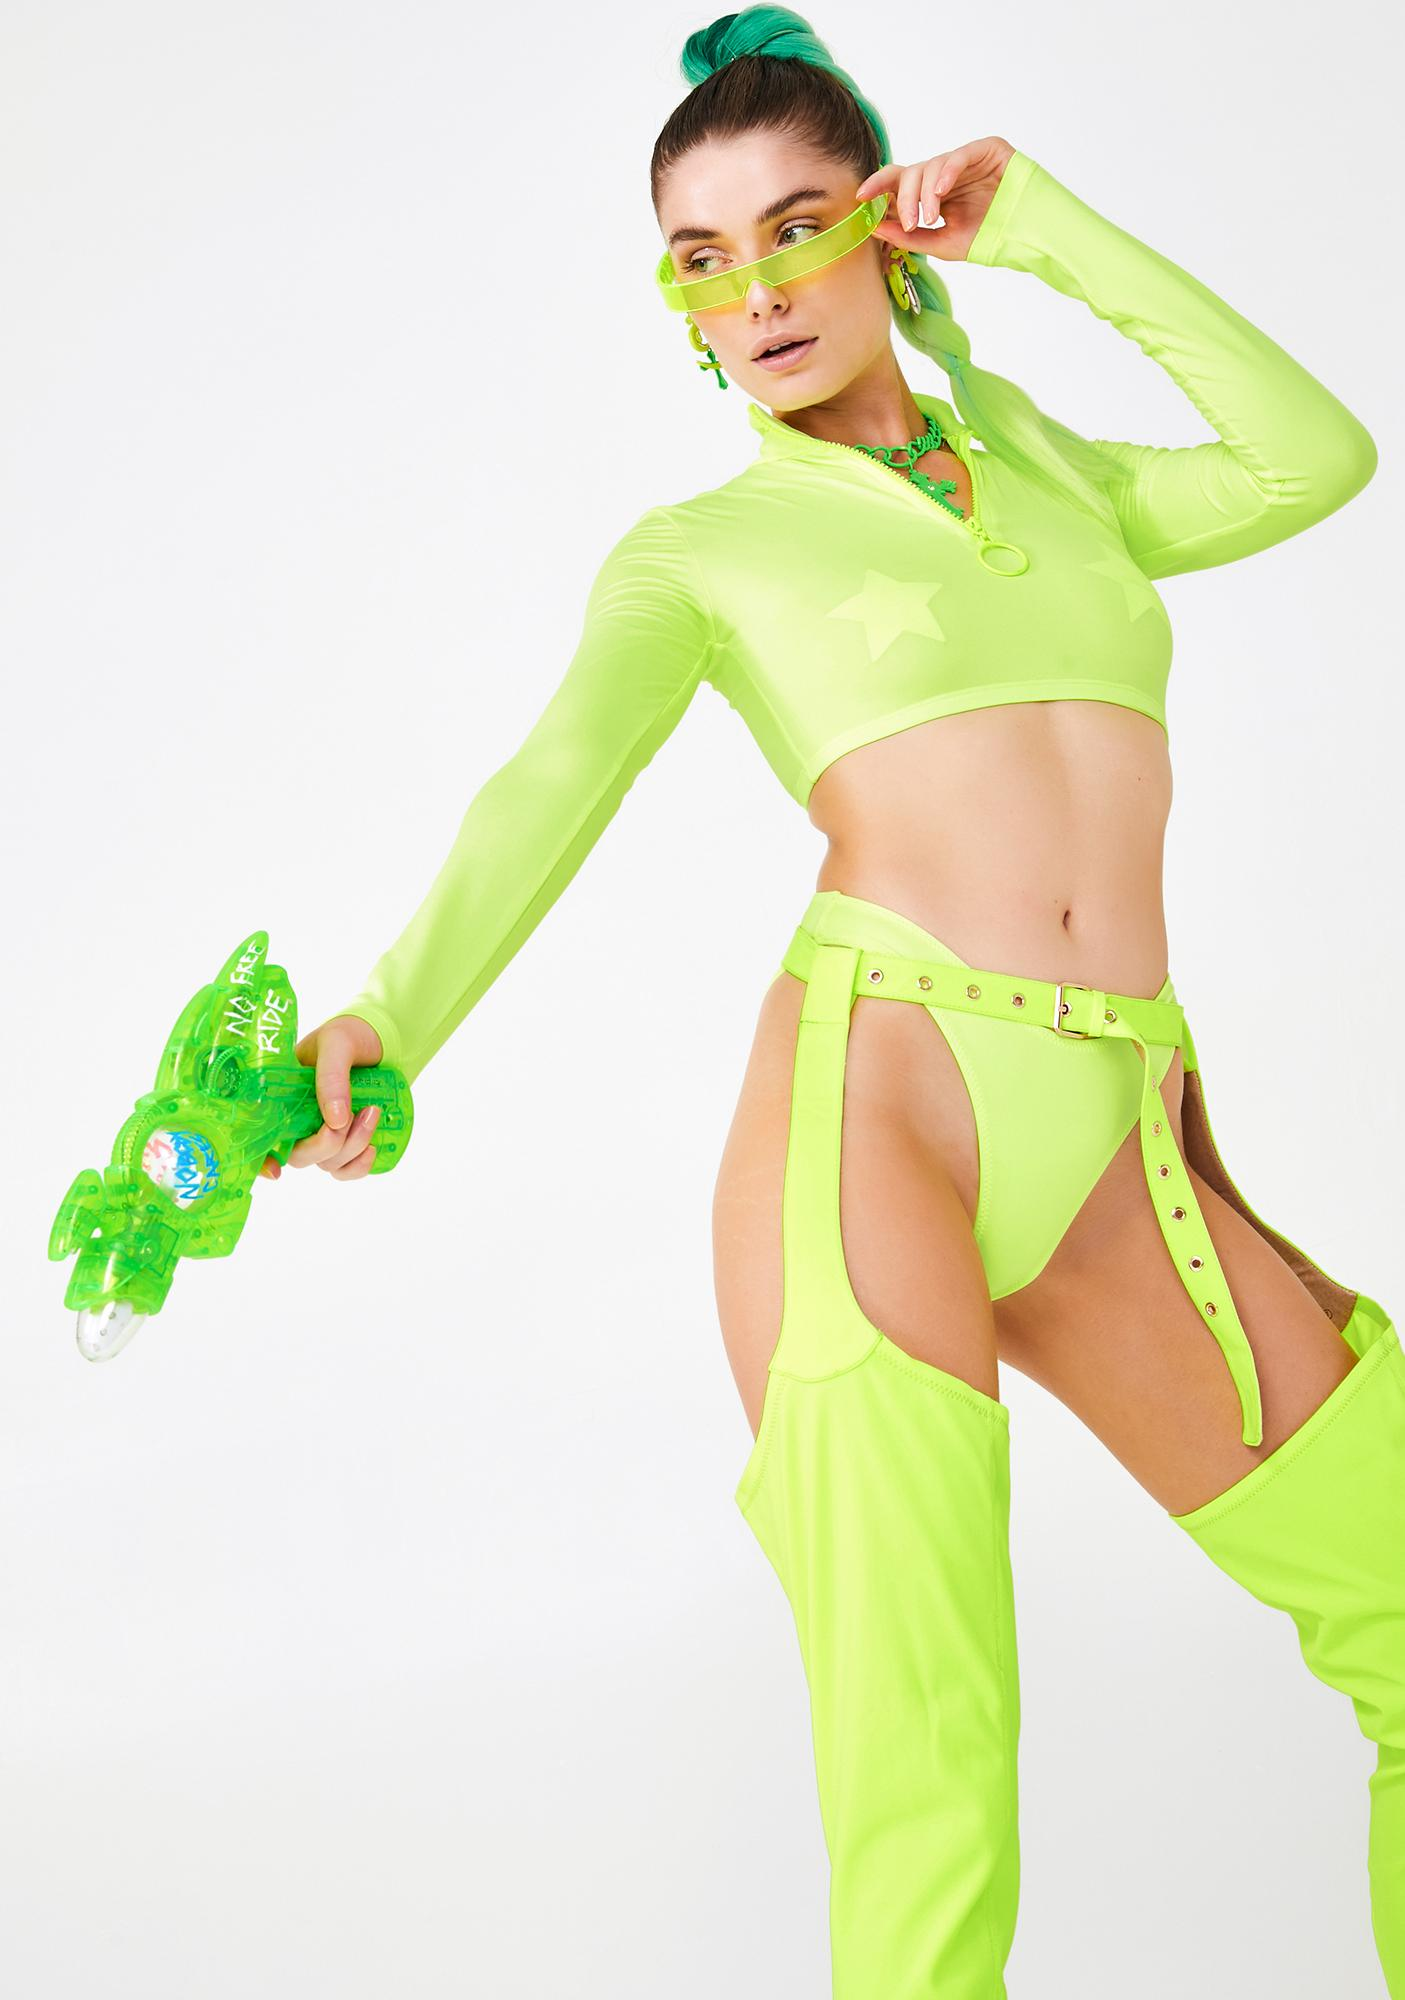 Kiki Riki Sour Cyber Desire Two Piece Set